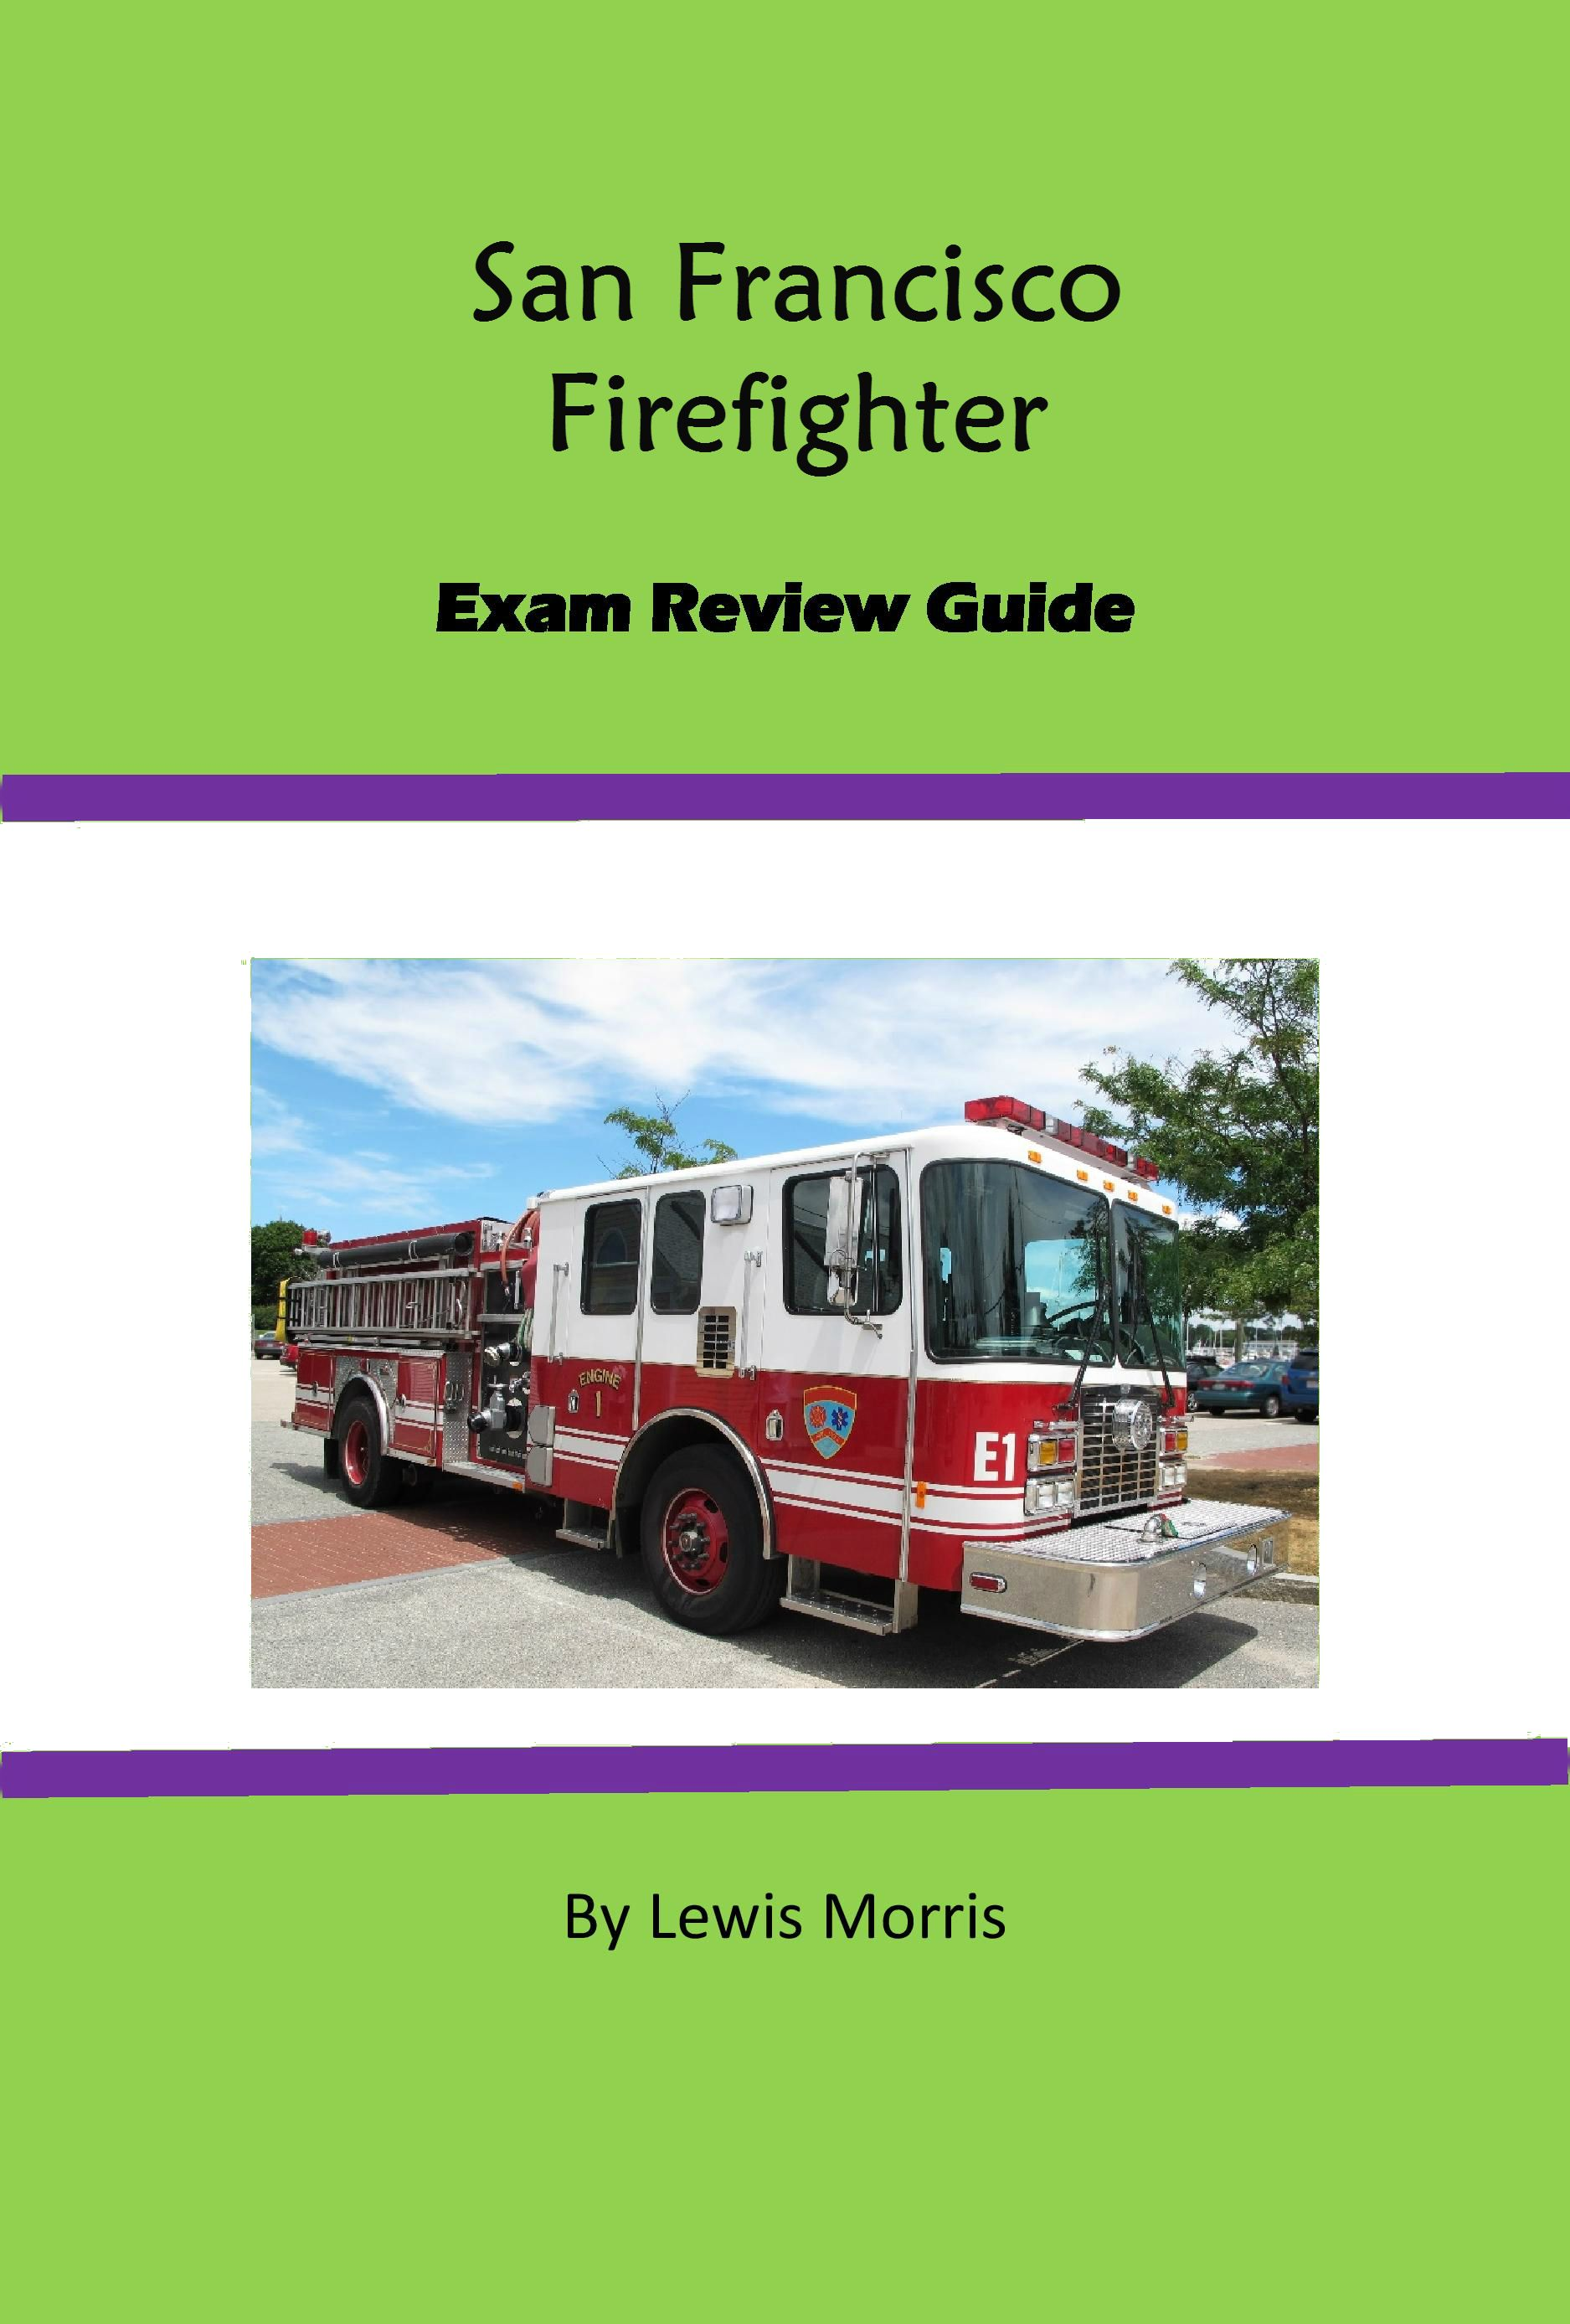 San Francisco Firefighter Exam Review Guide Firefighter Exam, The Exam, Civil  Service, Test